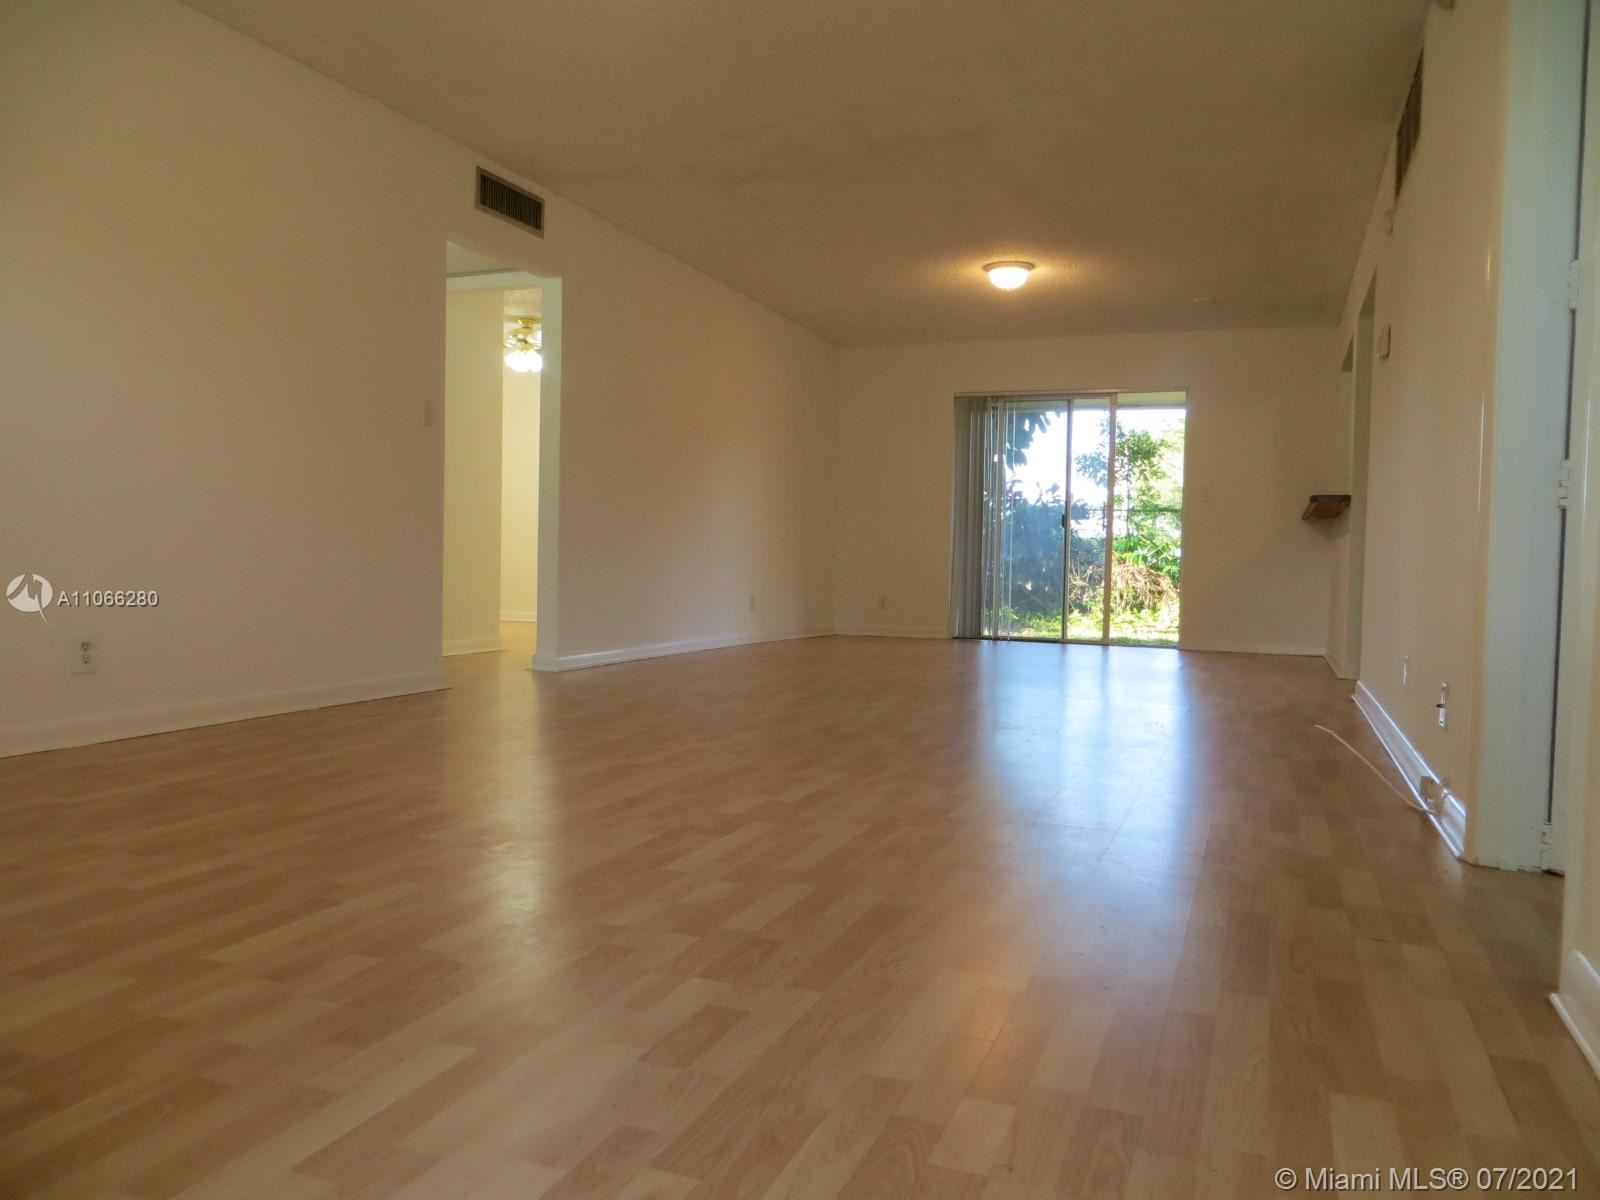 6930 NW 31st Ave #A13, Fort Lauderdale, FL 33309 - #: A11066280